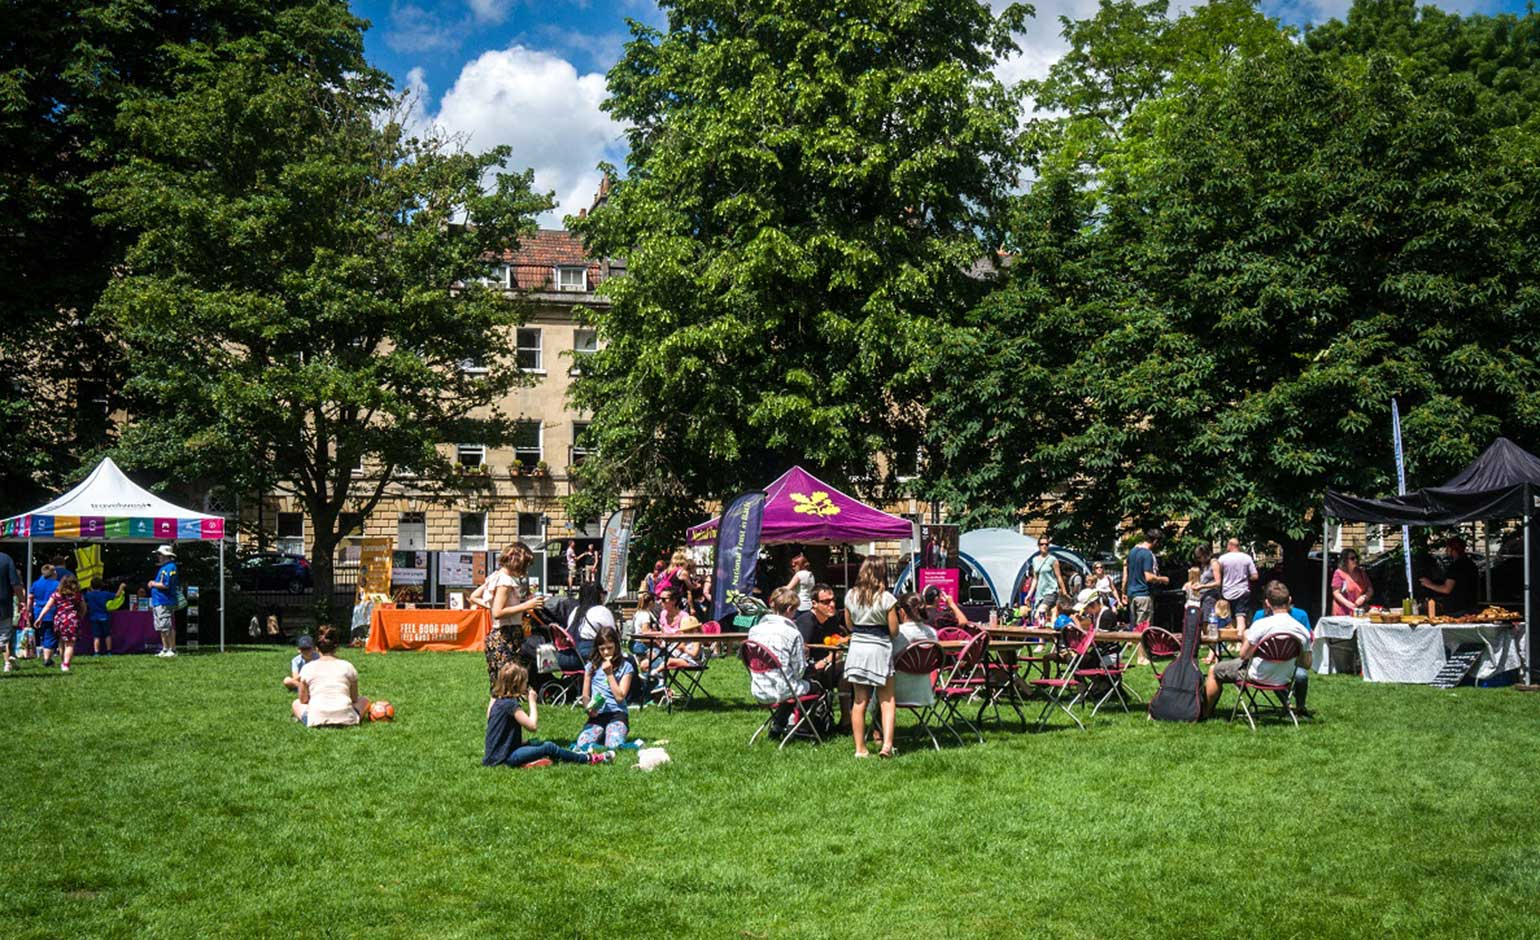 Free Festival of Nature event to return to Bath for a sixth year next month